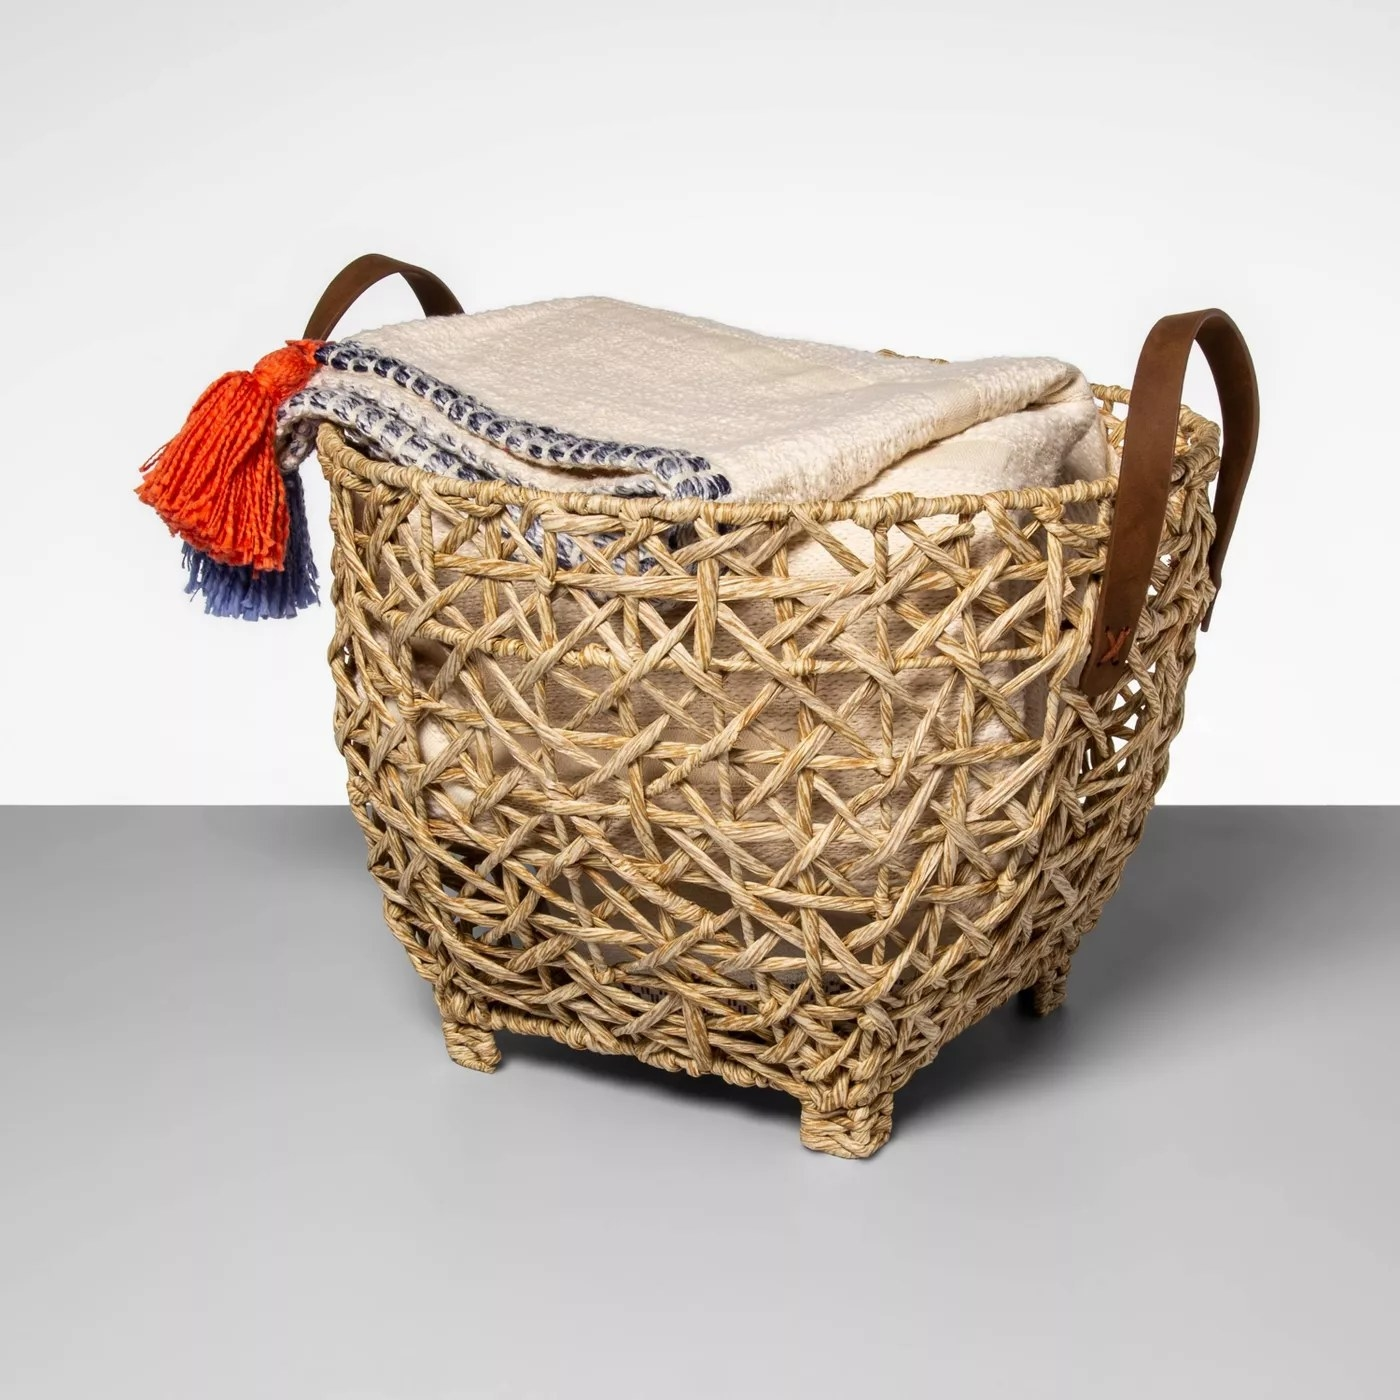 The basket with feet and leather handles